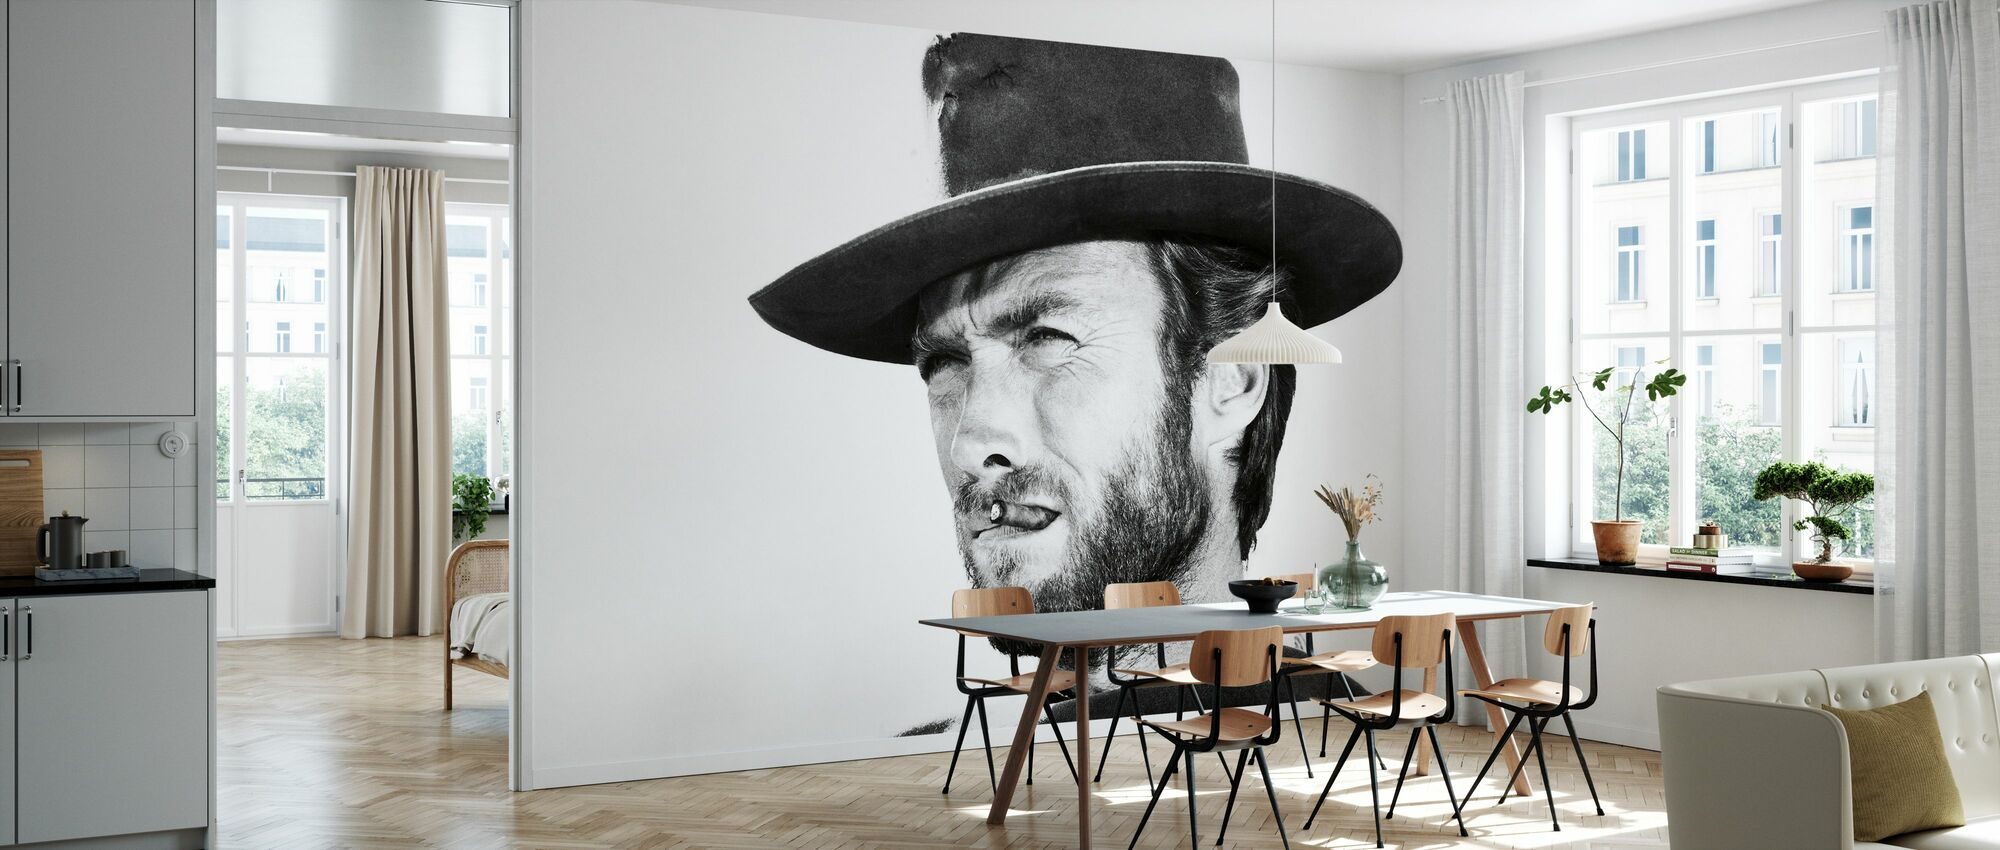 Clint Eastwood in Good the Bad and the Ugly - Wallpaper - Kitchen